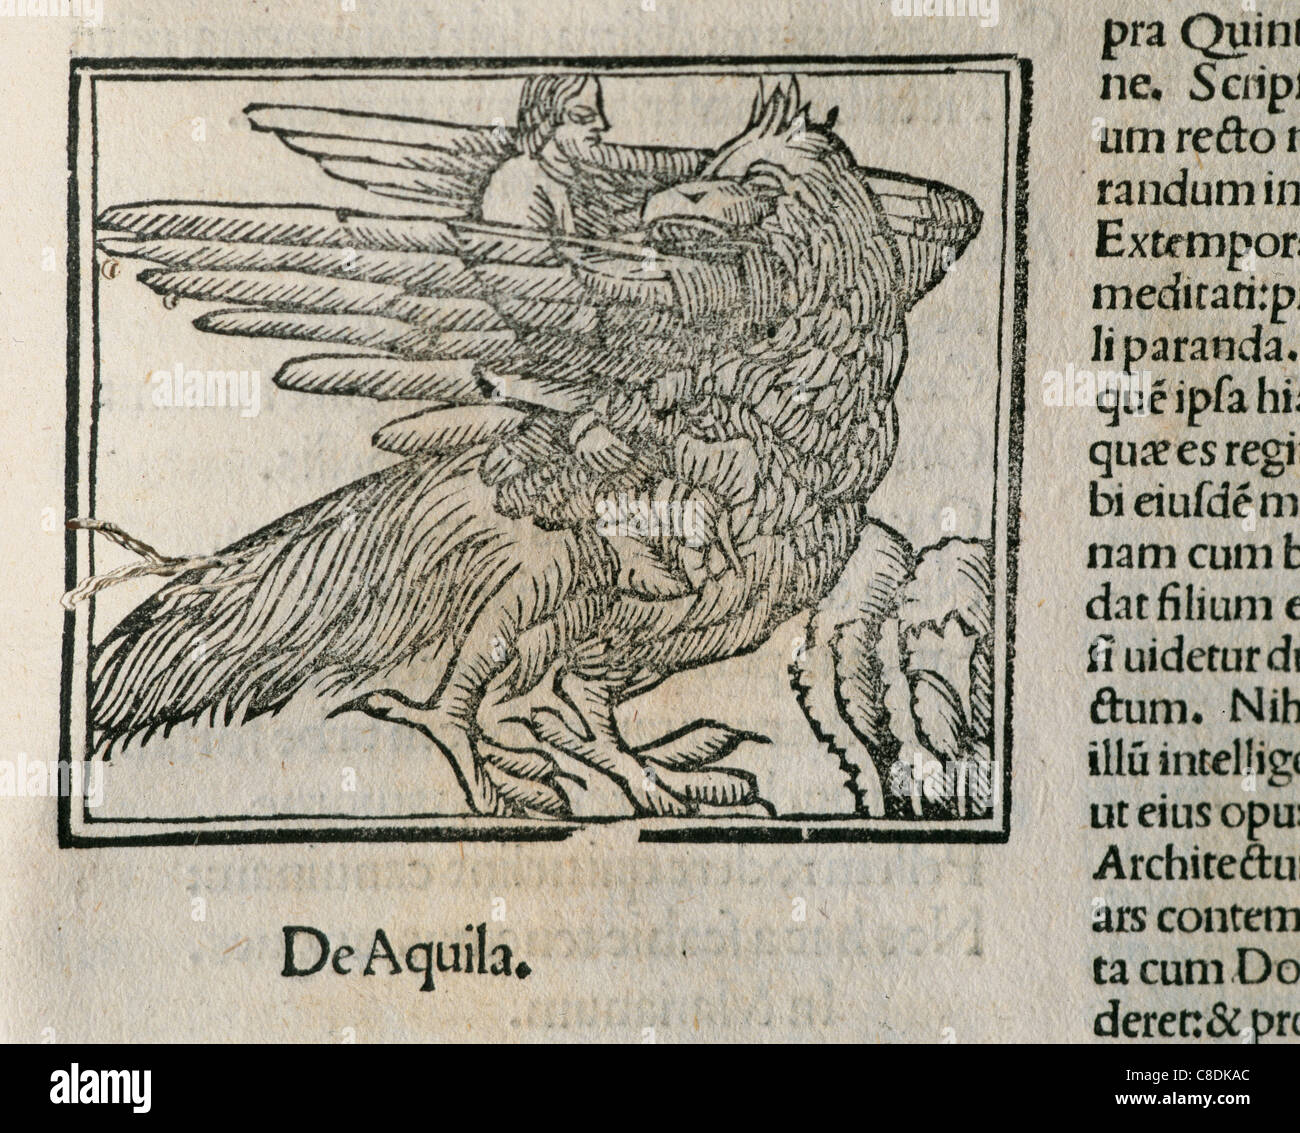 Eagle. Detail of the book Epigrams by Martial (40-104), latin poet. Latin edition. Venice. 1514. - Stock Image